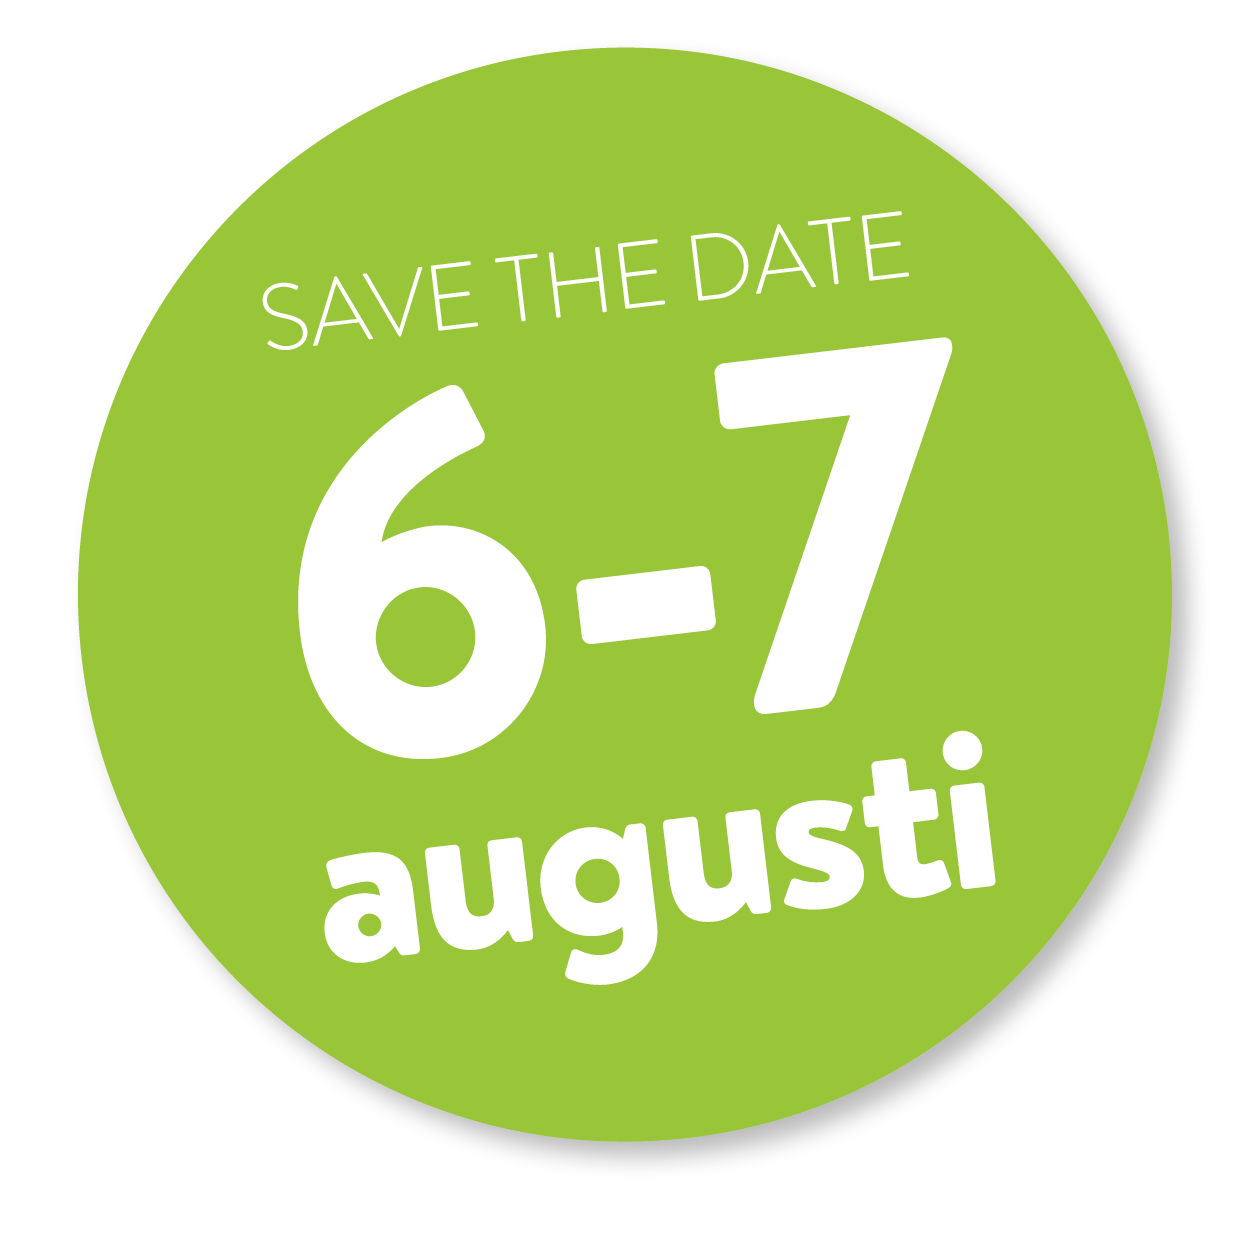 save the date 6-7 augu